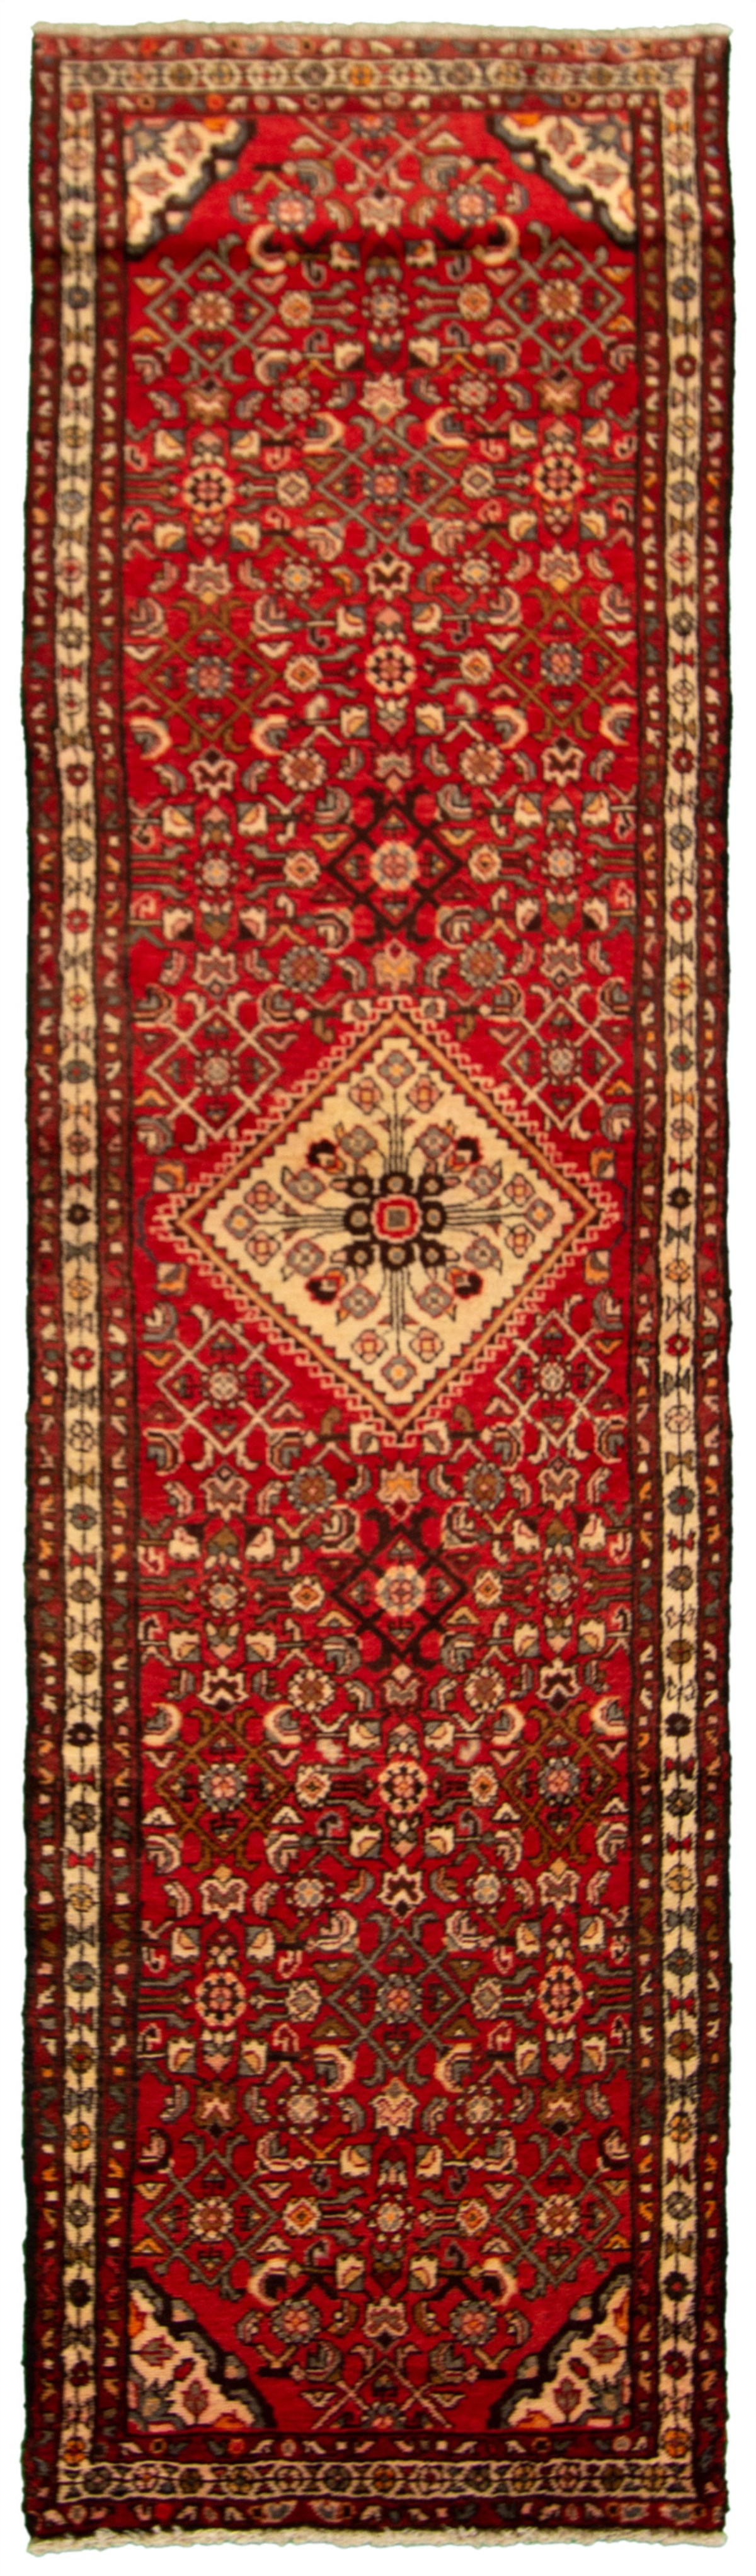 """Hand-knotted Hamadan Red Wool Rug 2'6"""" x 9'10"""" Size: 2'6"""" x 9'10"""""""